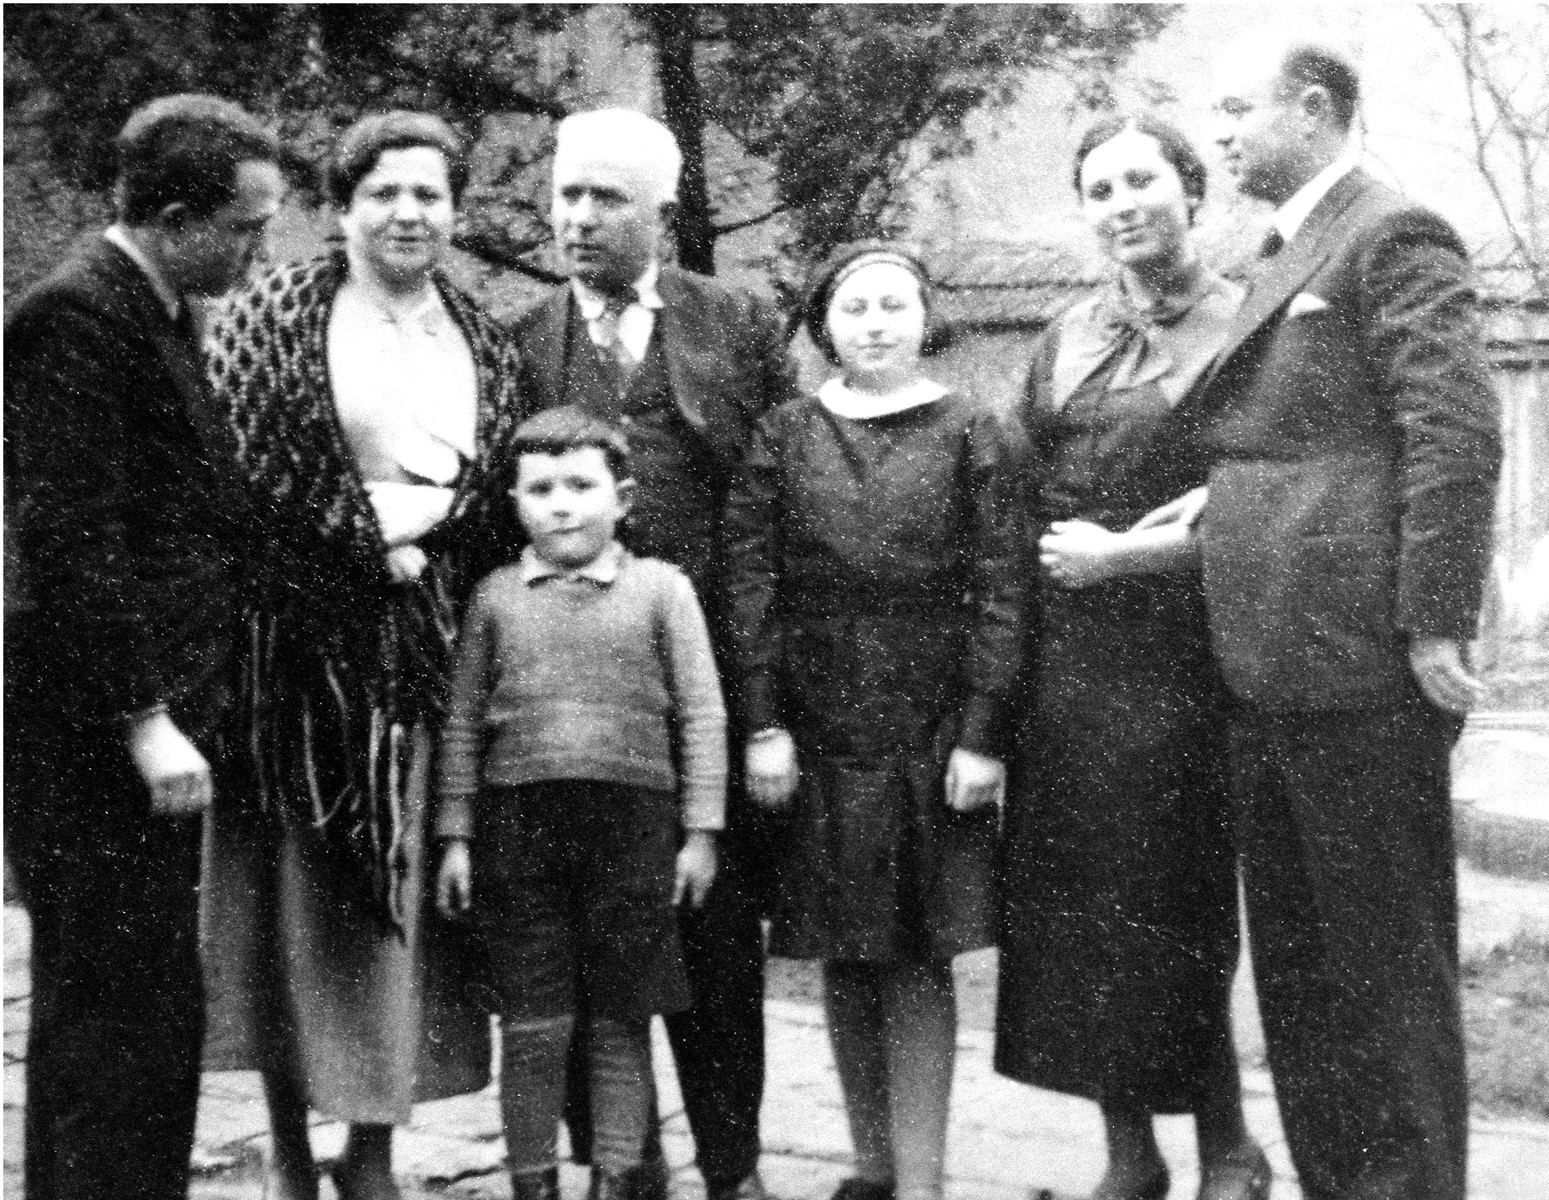 Members of the extended Baruch family pose outside one of their homes in Sofia, Bulgaria.  Pictured in front is Israel Baruch.  Behind him from left to right are: Leon, Rachel, Yako, Marietta, Esther and Joseph Baruch.